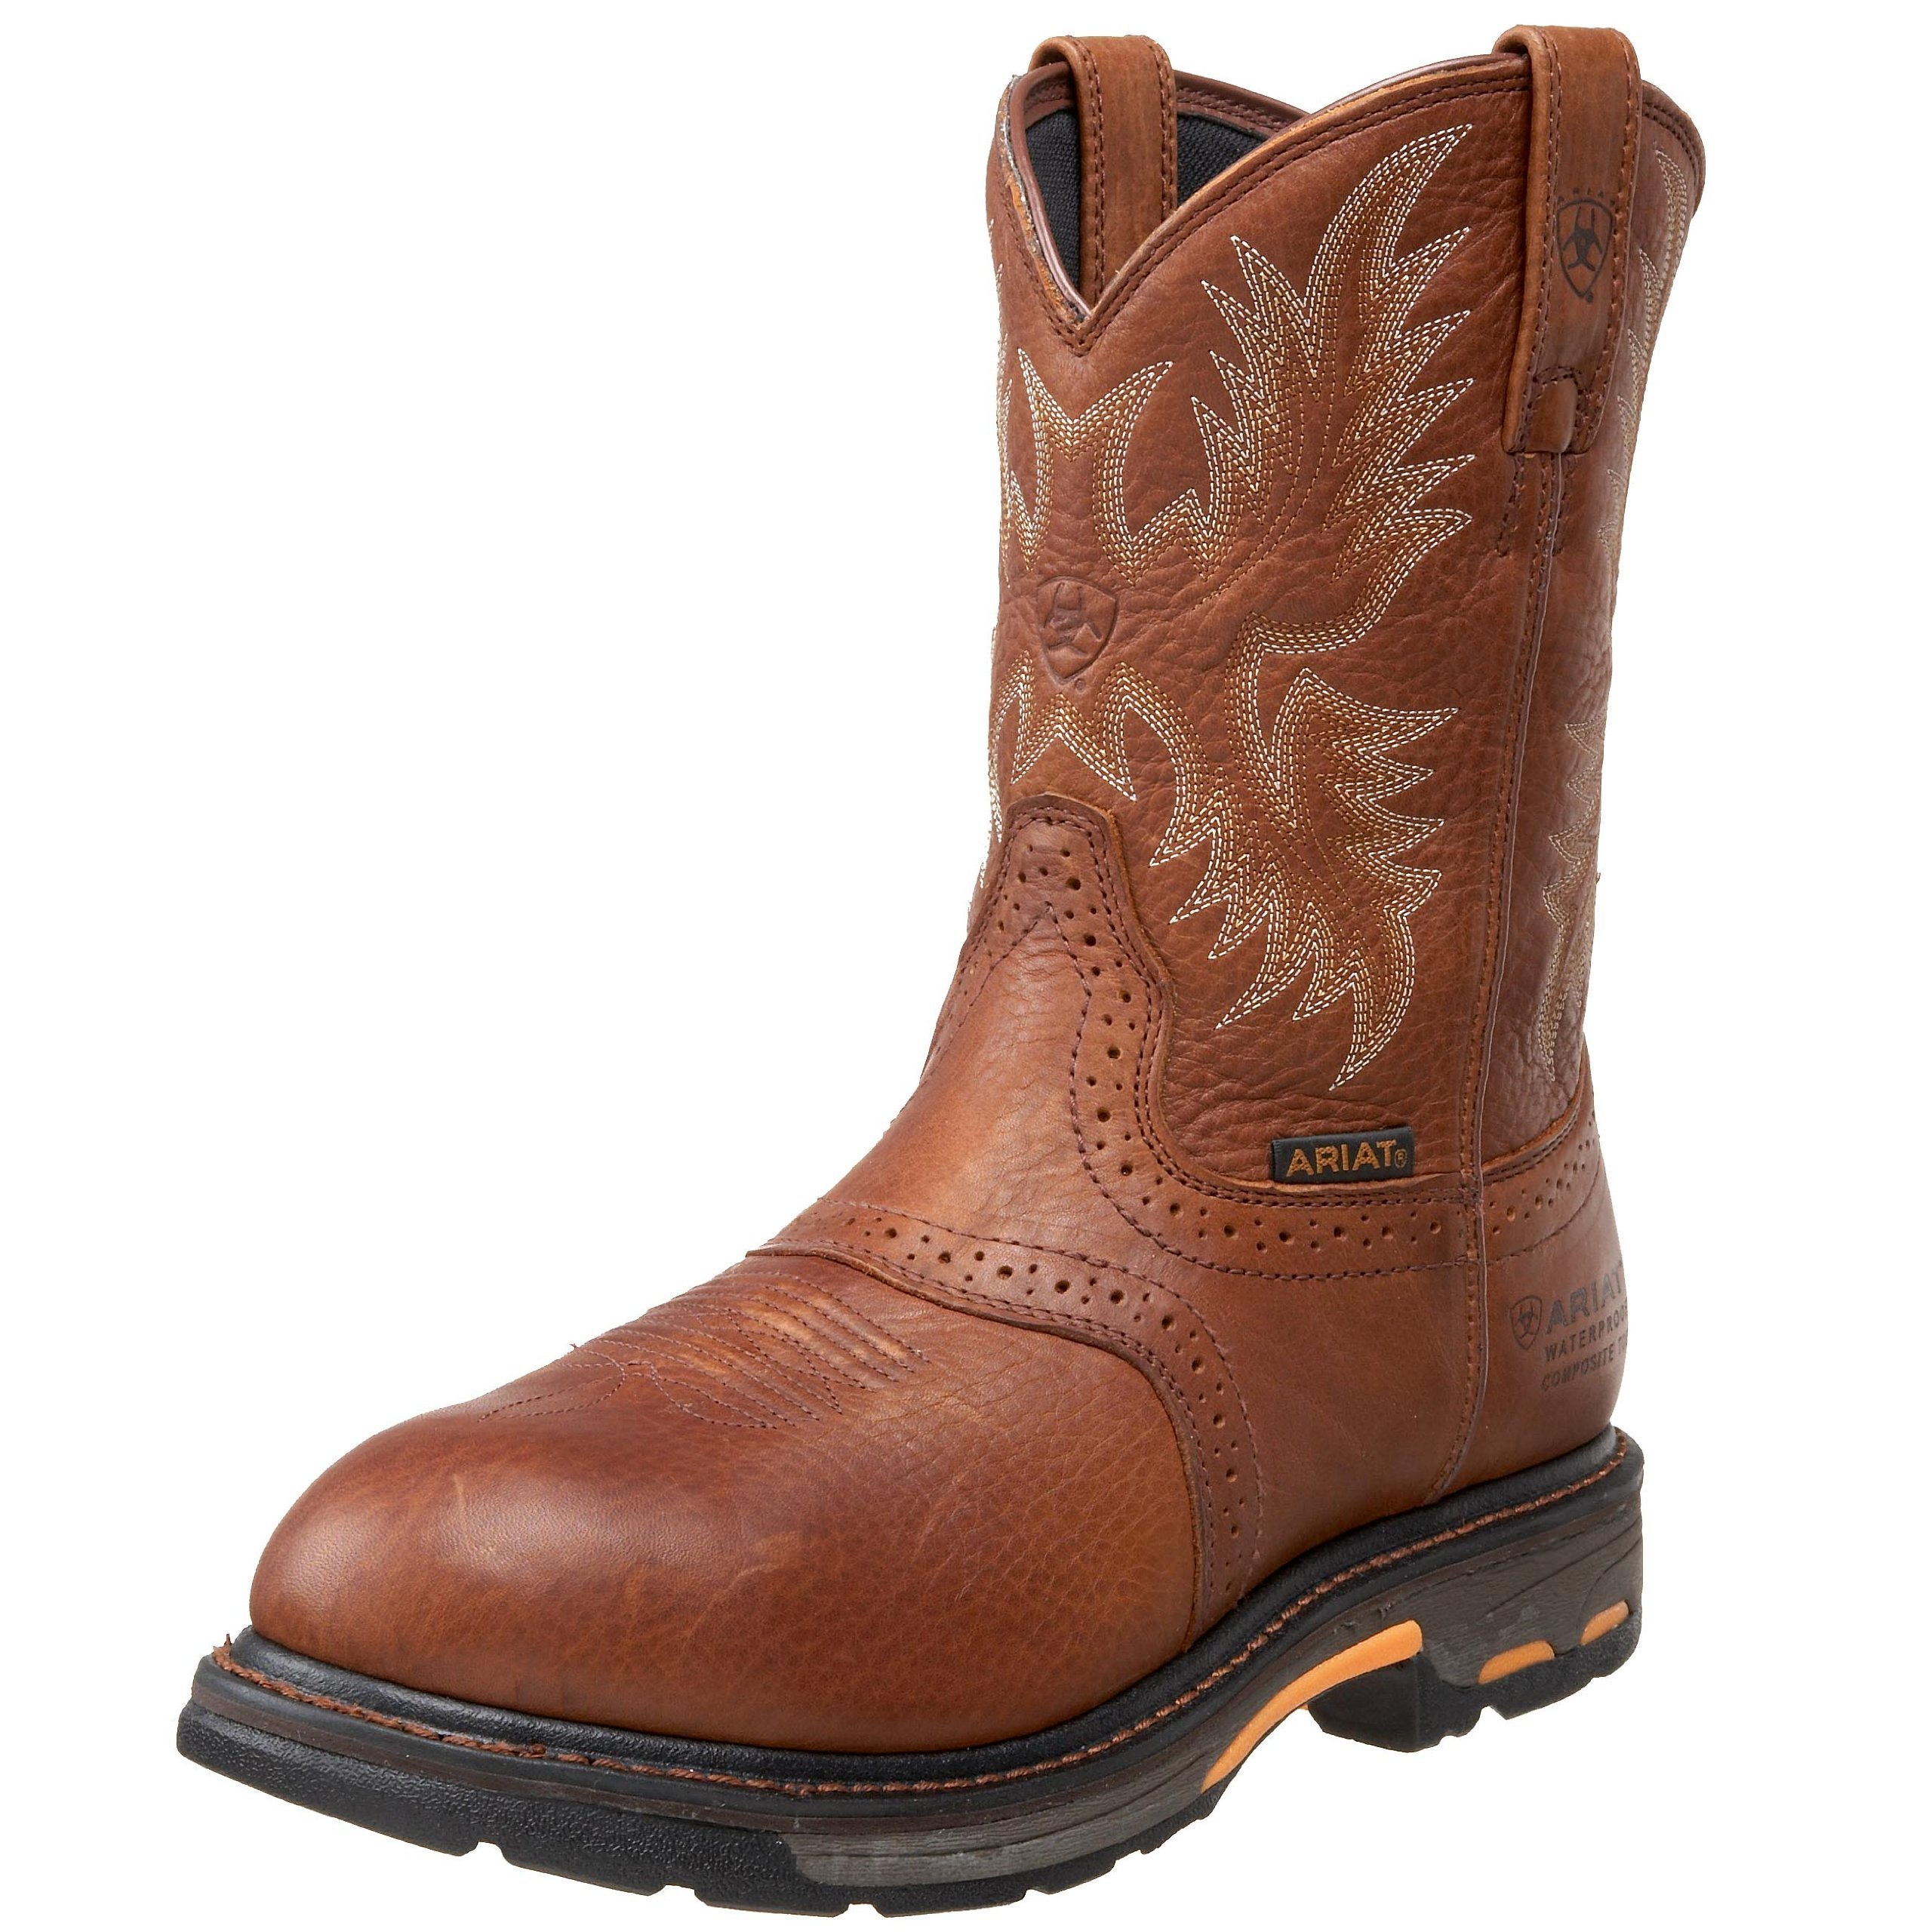 Ariat Men's Workhog Pull-on H2O Composite Toe Work Boot, Dark Copper, 8 2E US